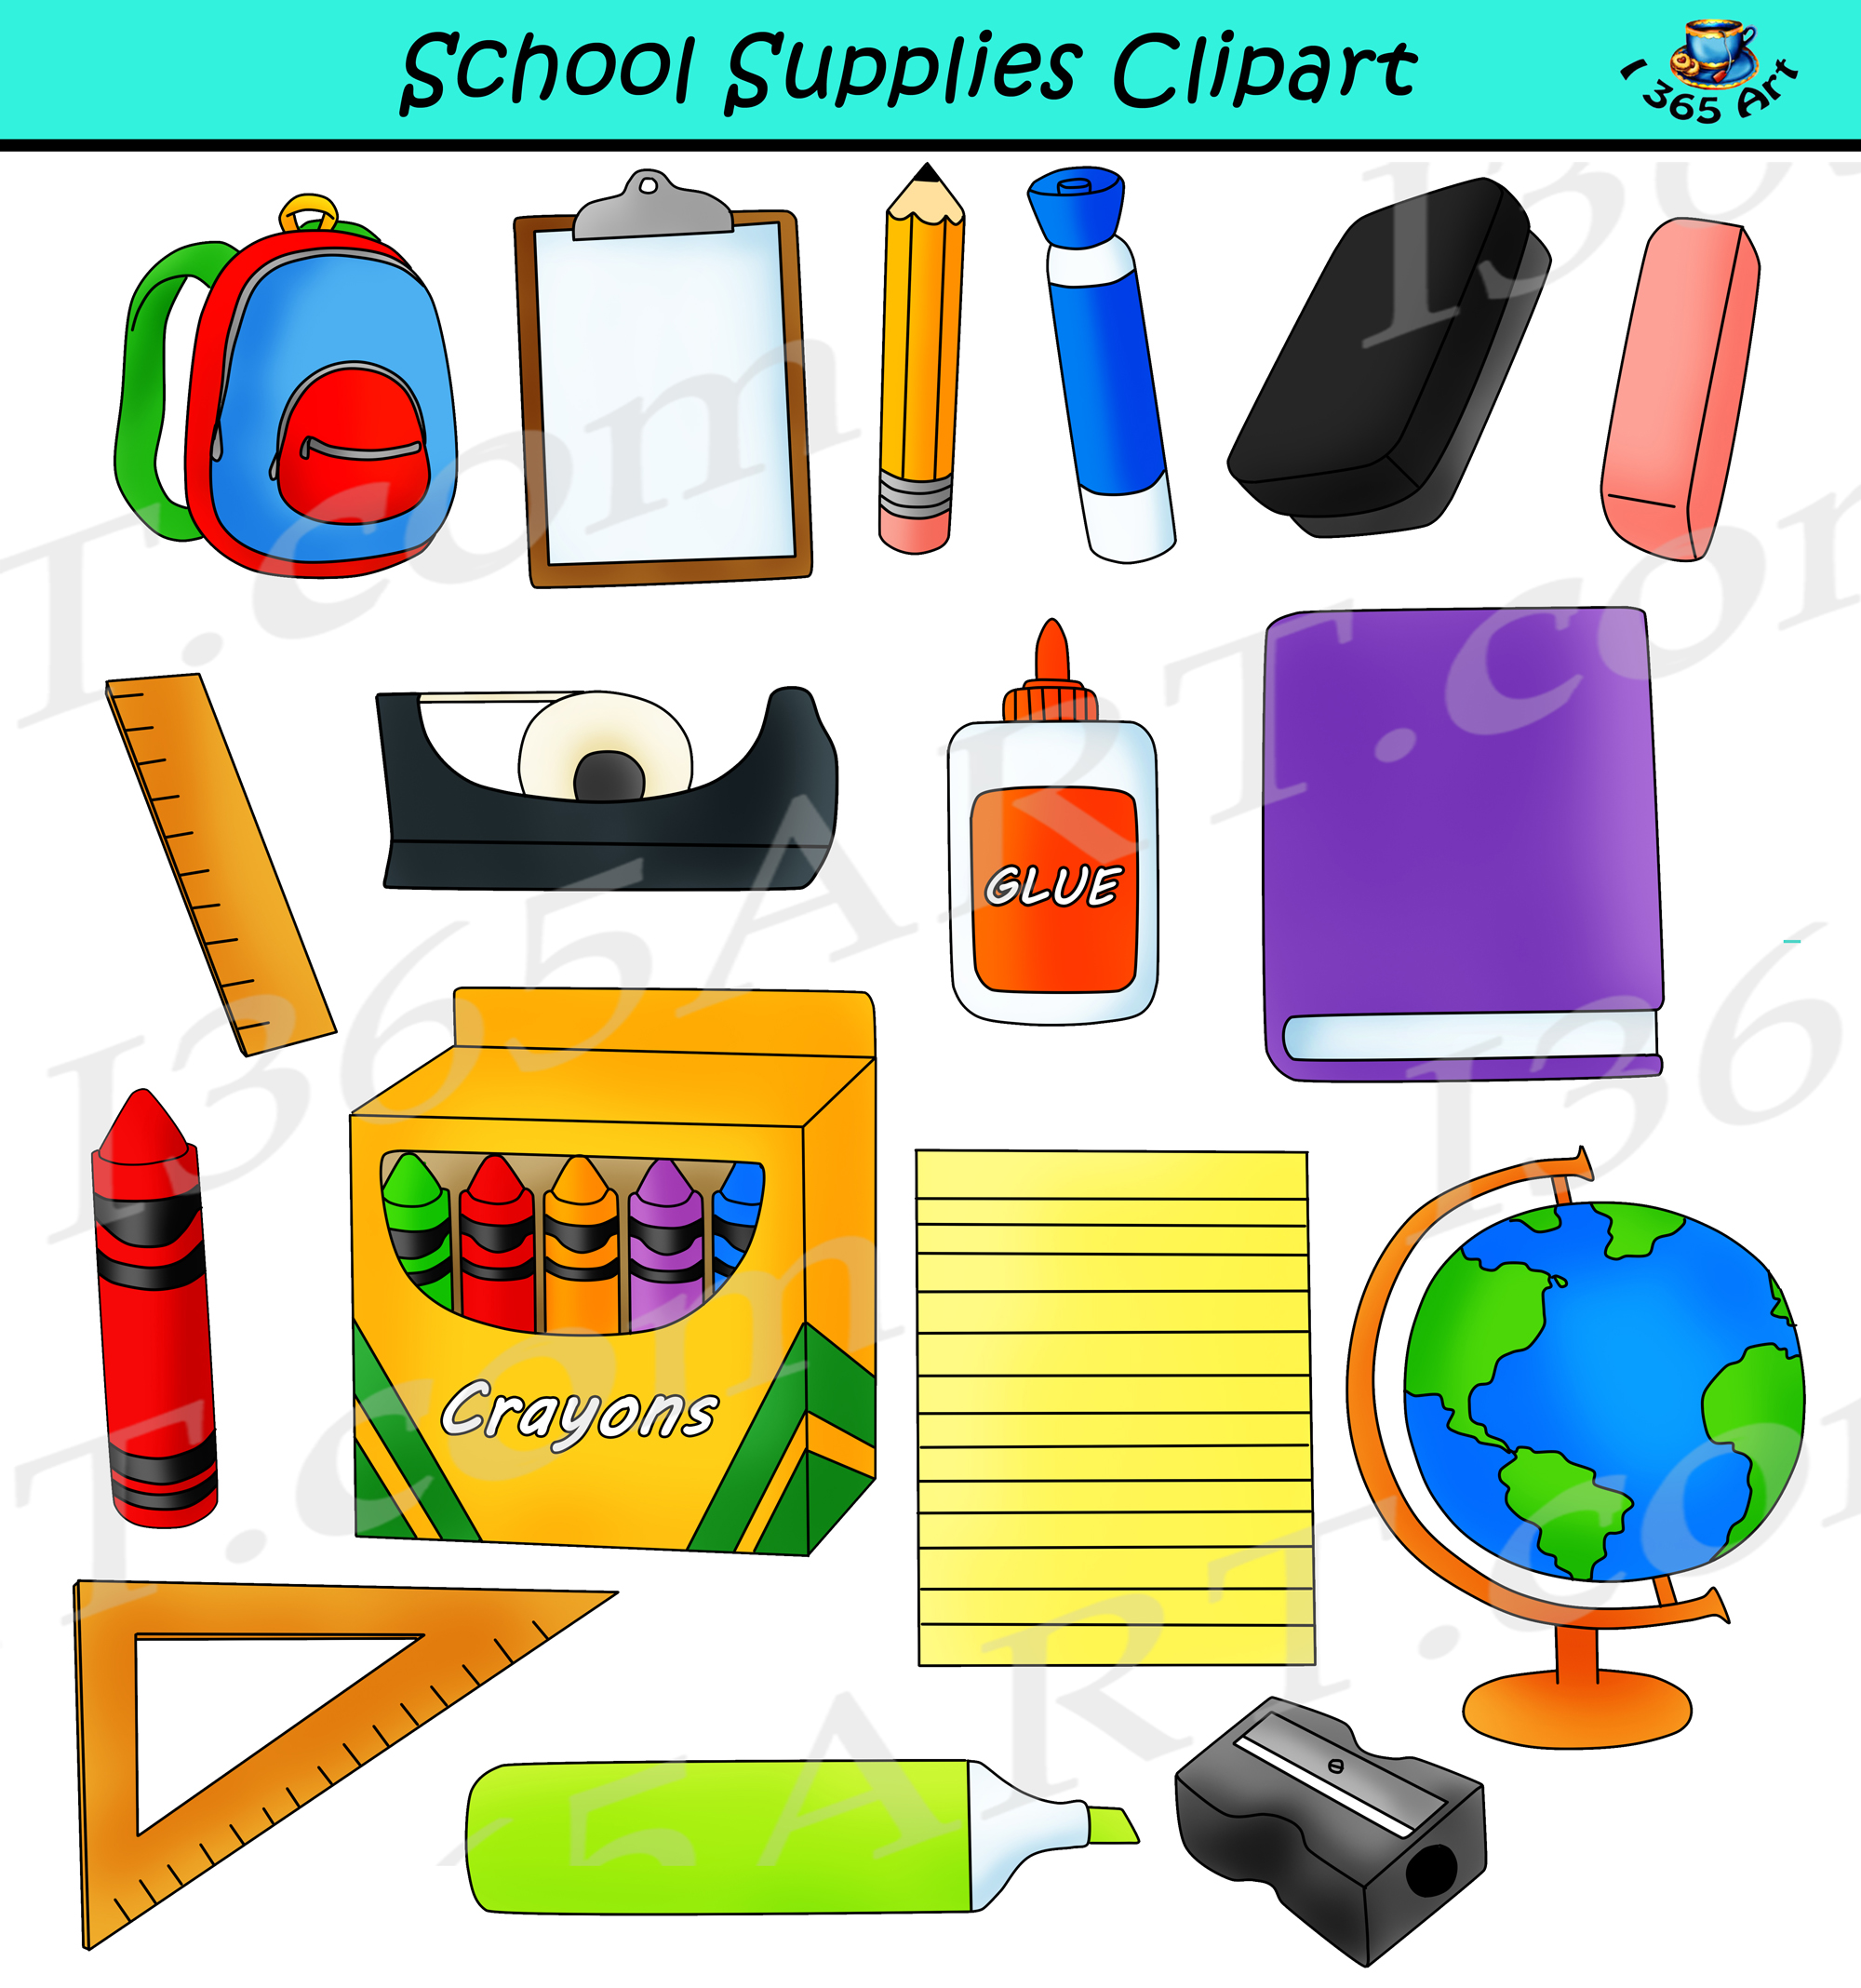 School Supplies Clipart Back To School Commercial